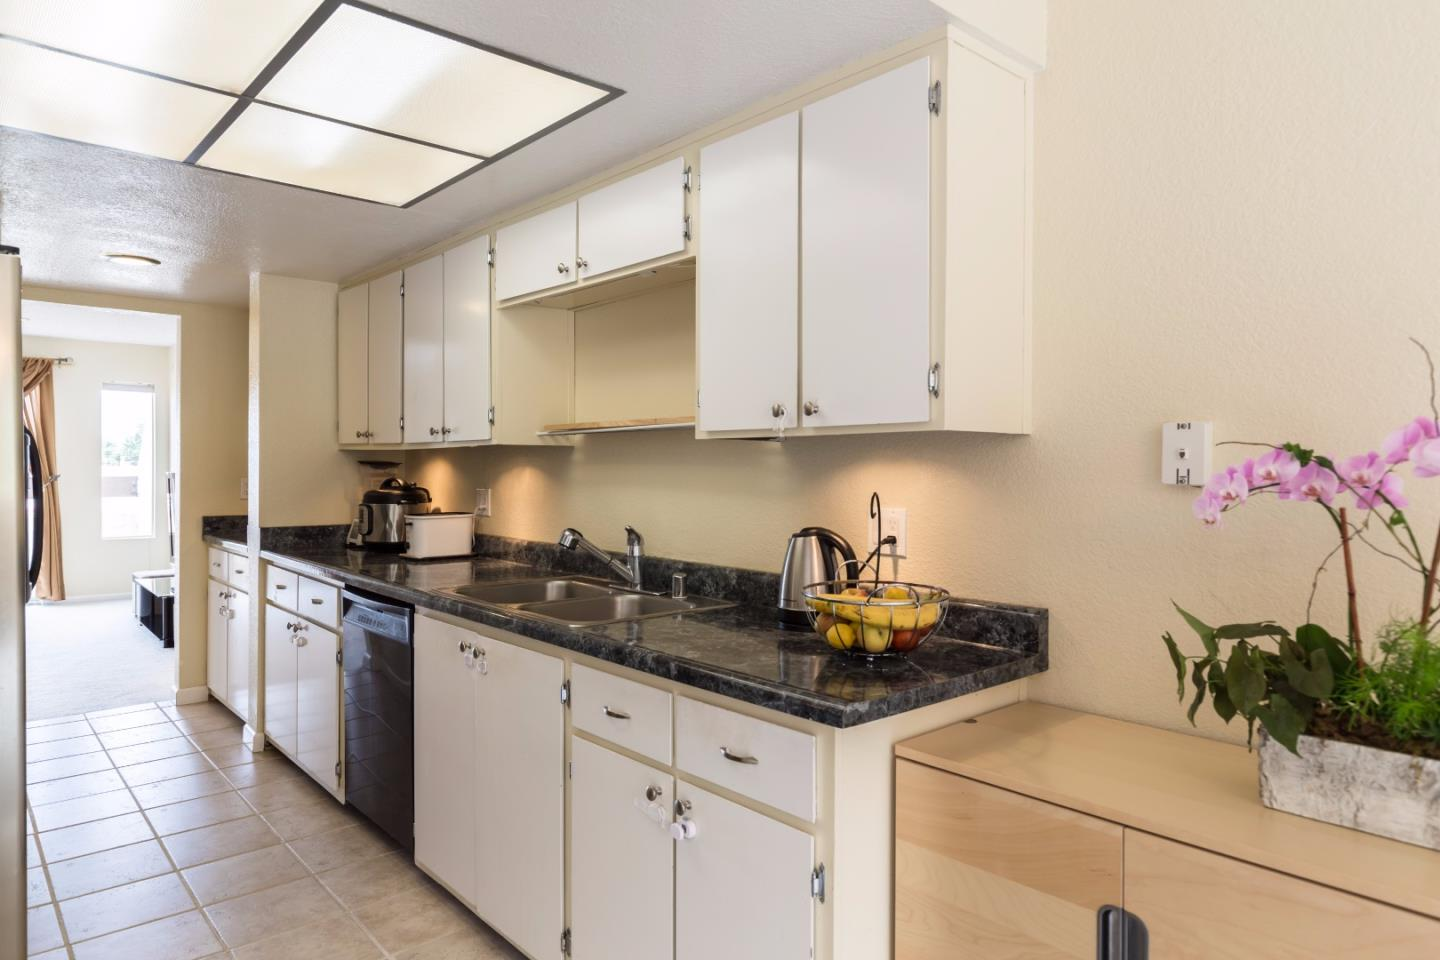 Additional photo for property listing at 3550 Carter Drive  South San Francisco, カリフォルニア 94080 アメリカ合衆国